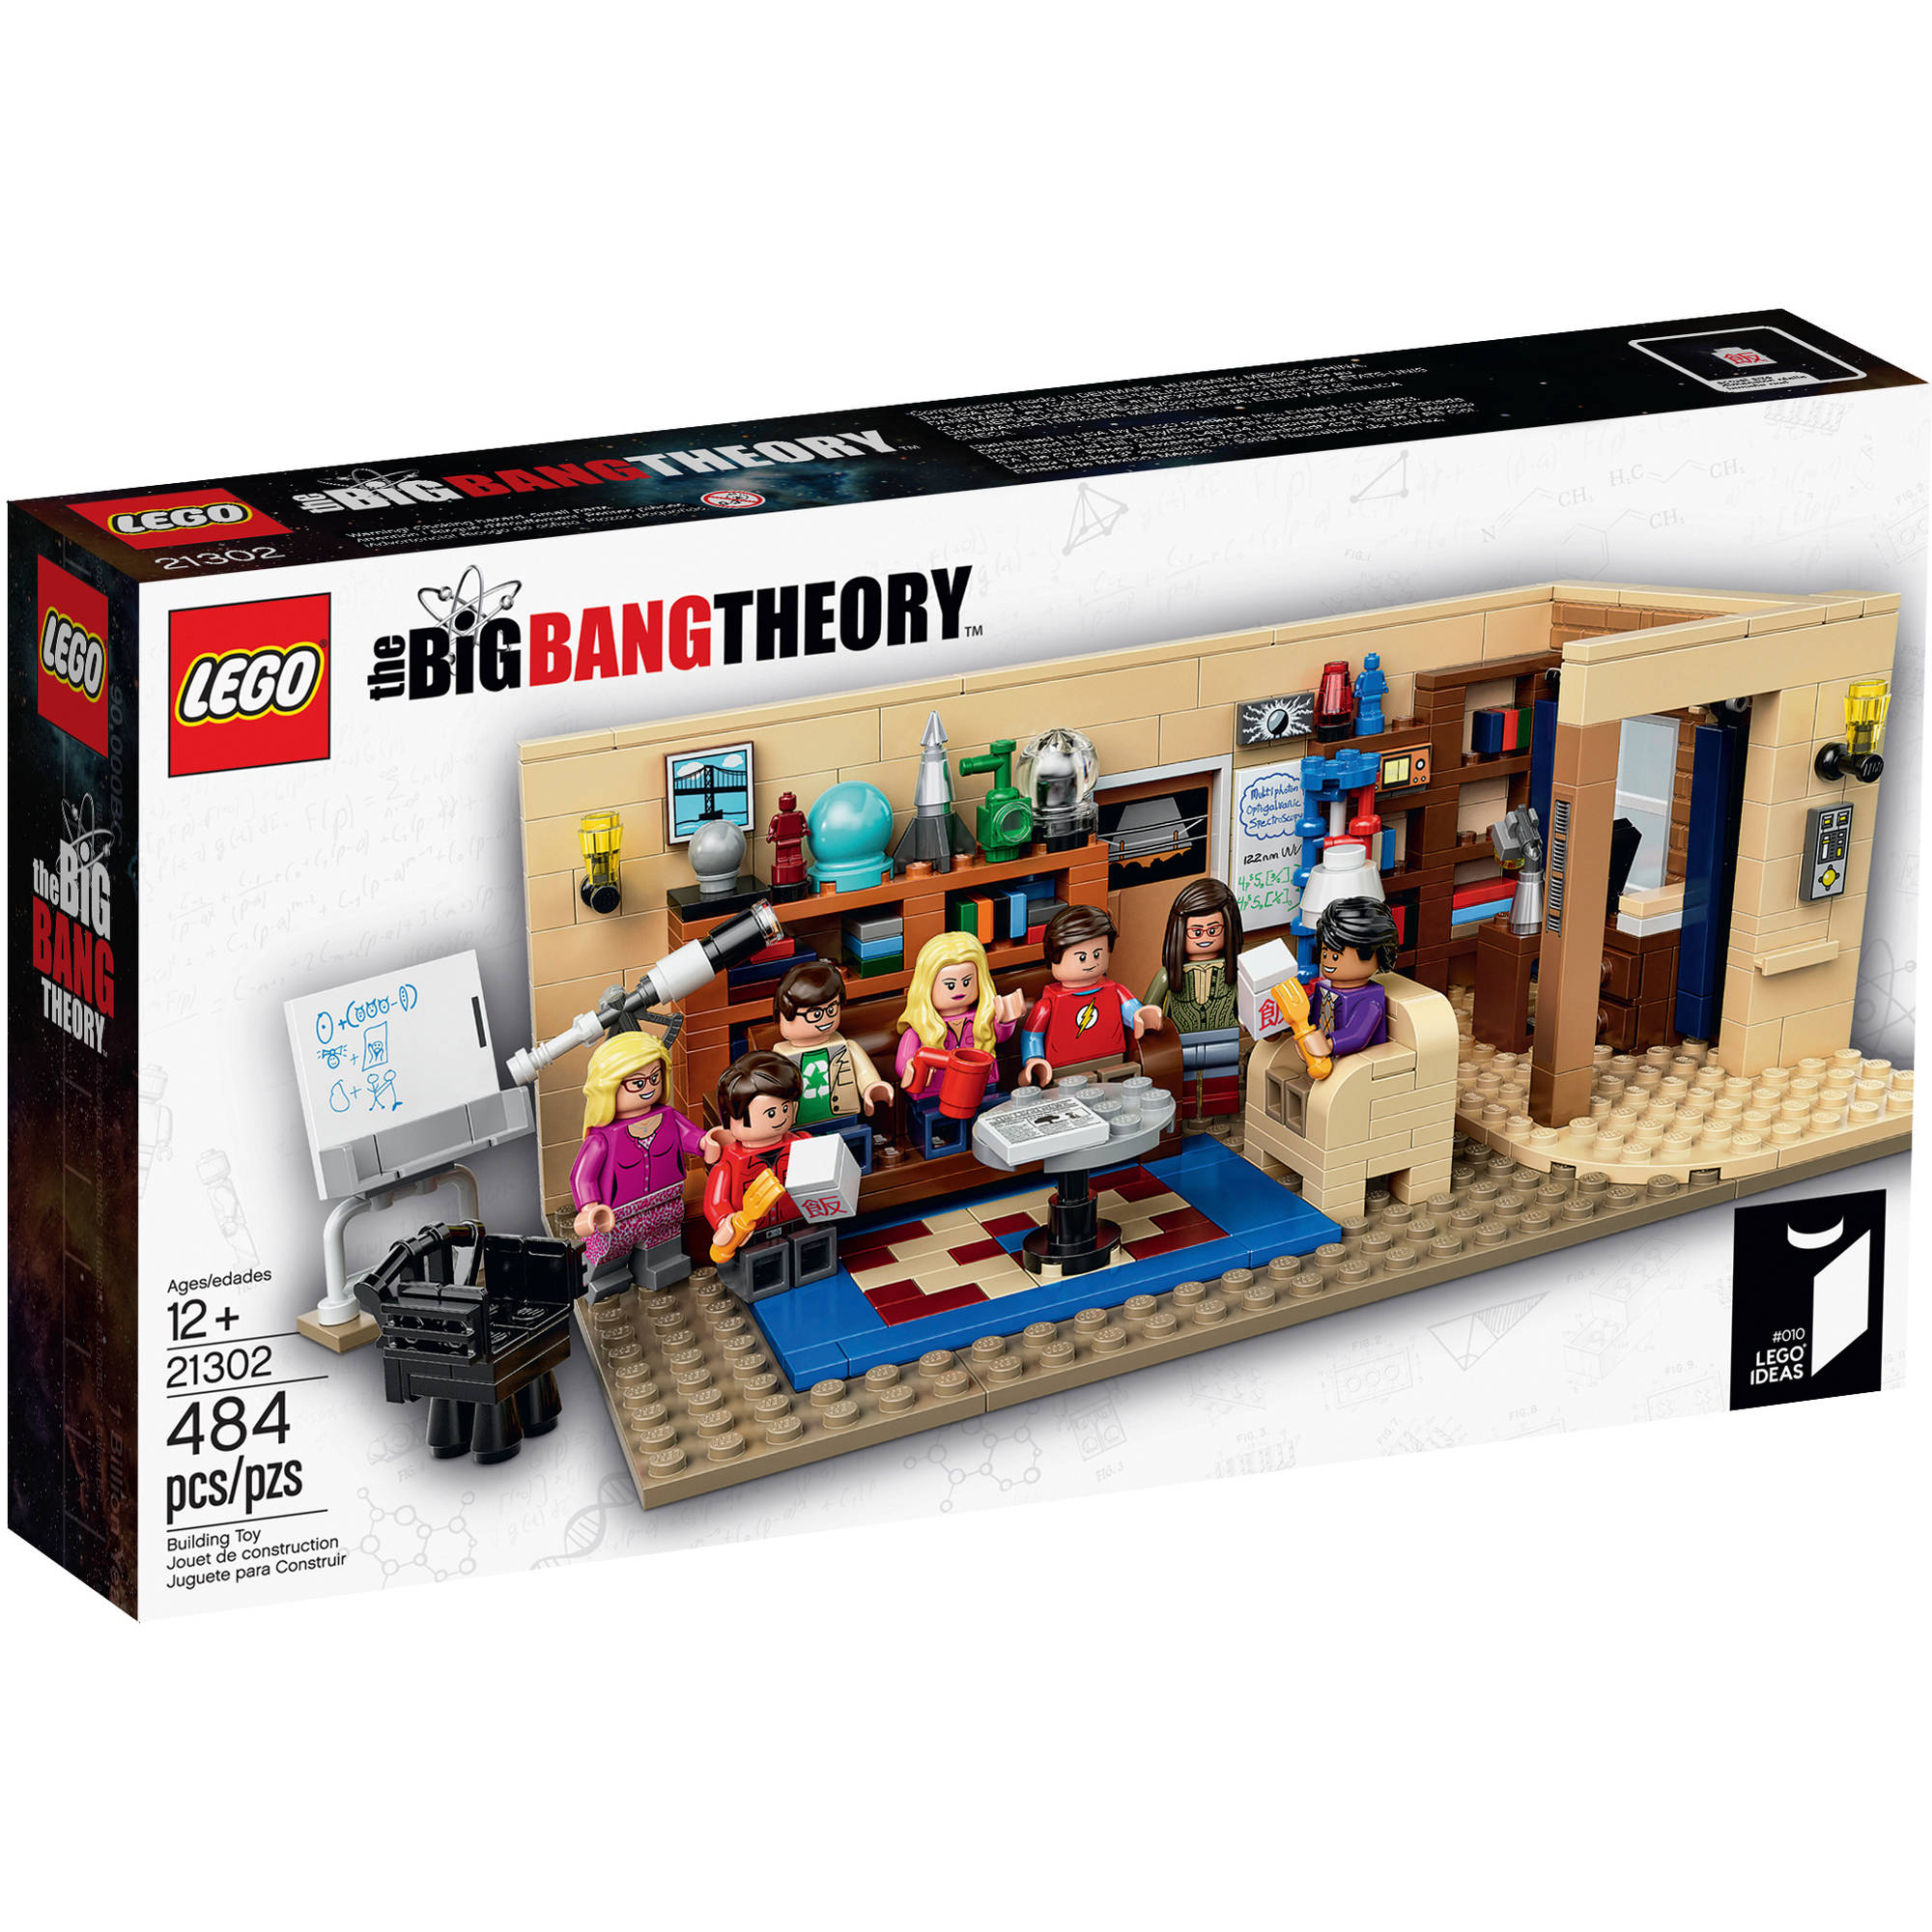 LEGO Ideas The Big Bang Theory, 21302